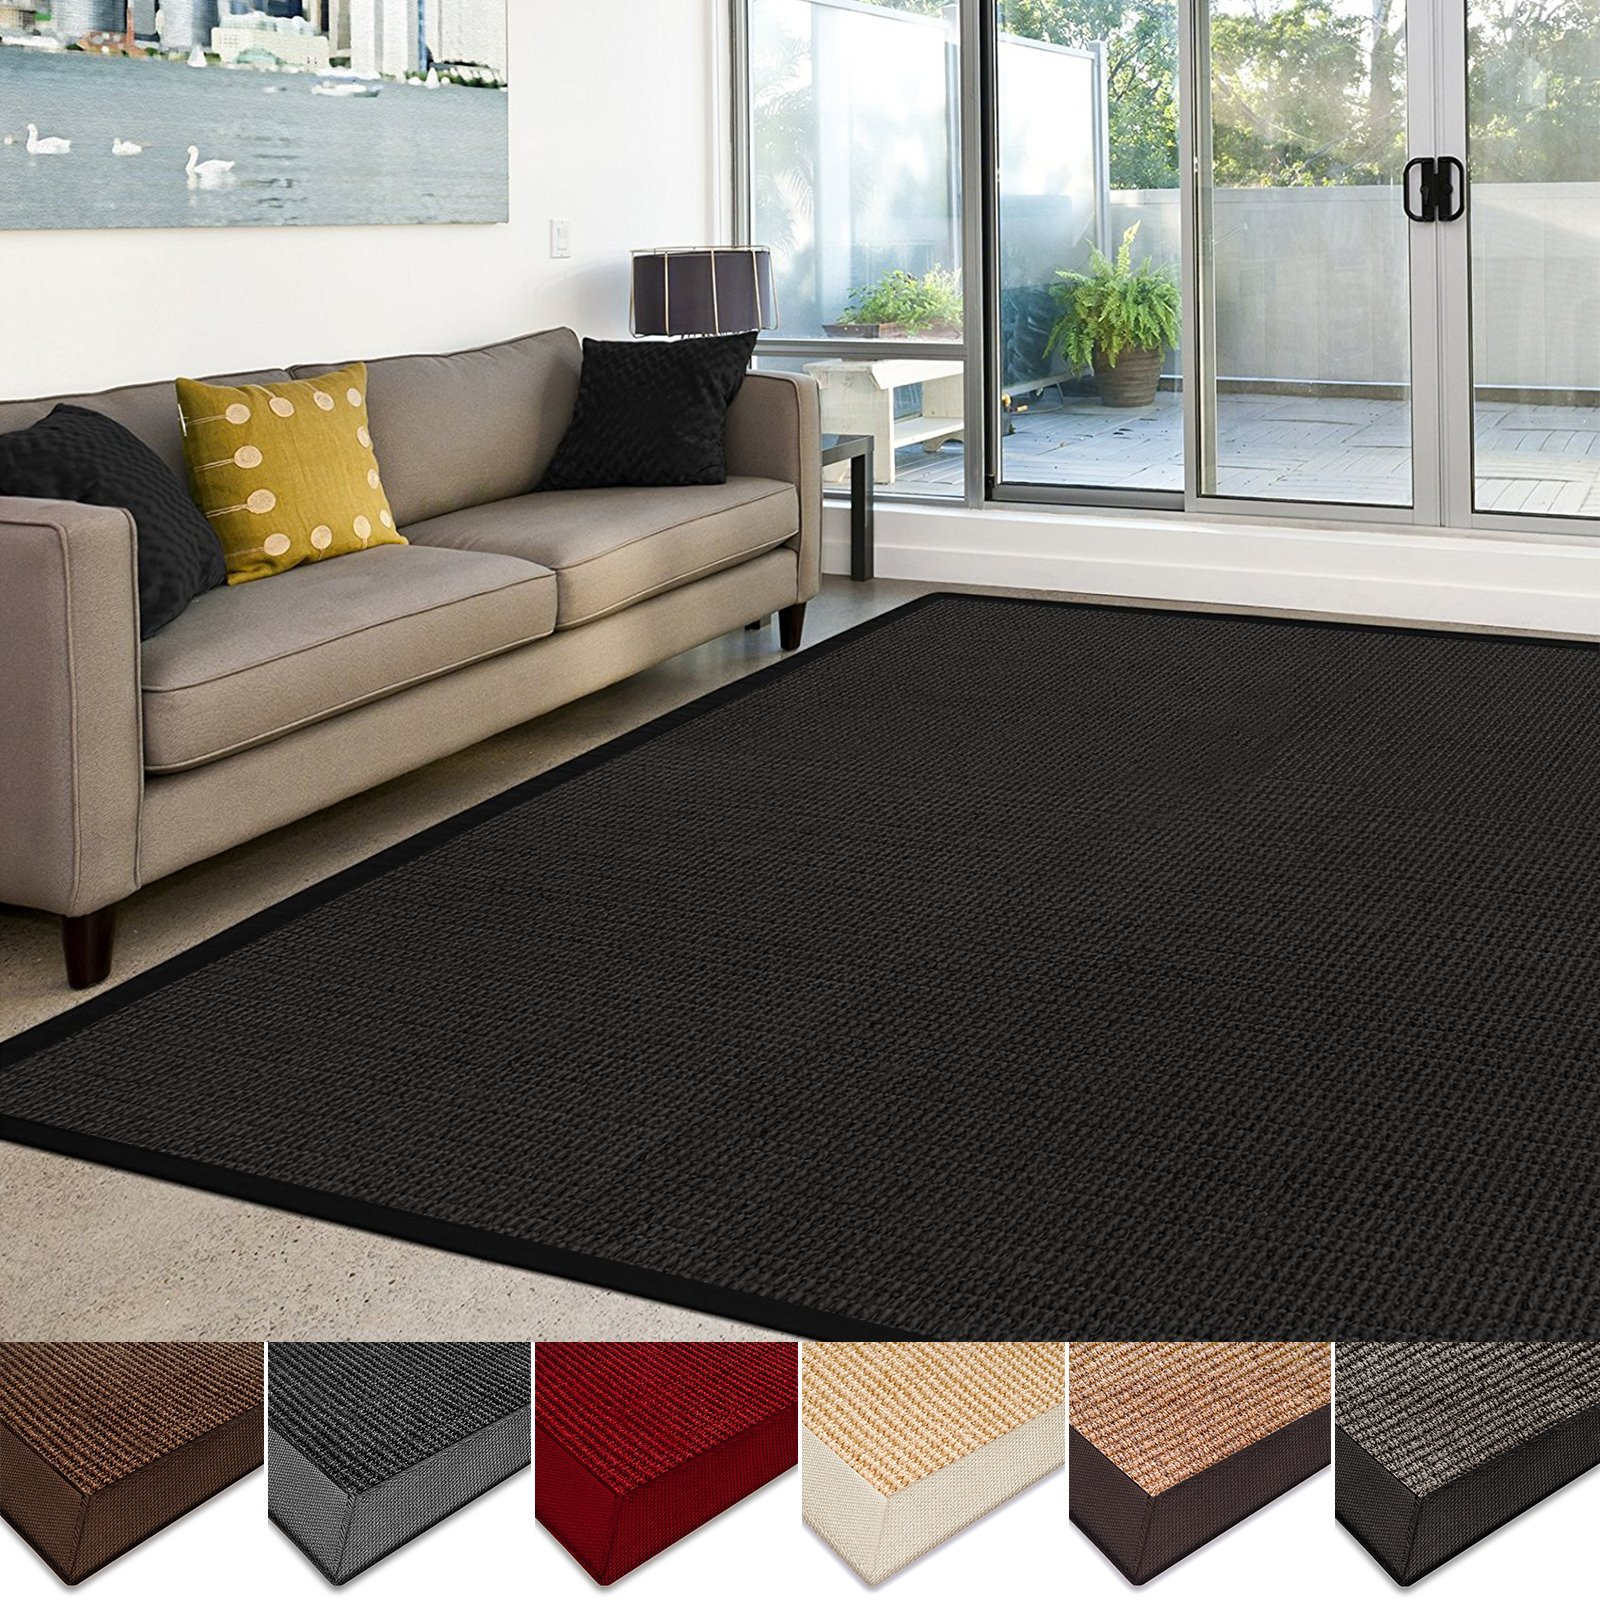 casa pura Sisal Rug   100% Natural Fiber Area Rug   Non-Skid Eco-Friendly Throw Carpet for Entryway, Dining or Living Room   Various Colors and Sizes   Black - 6'x9' by casa pura